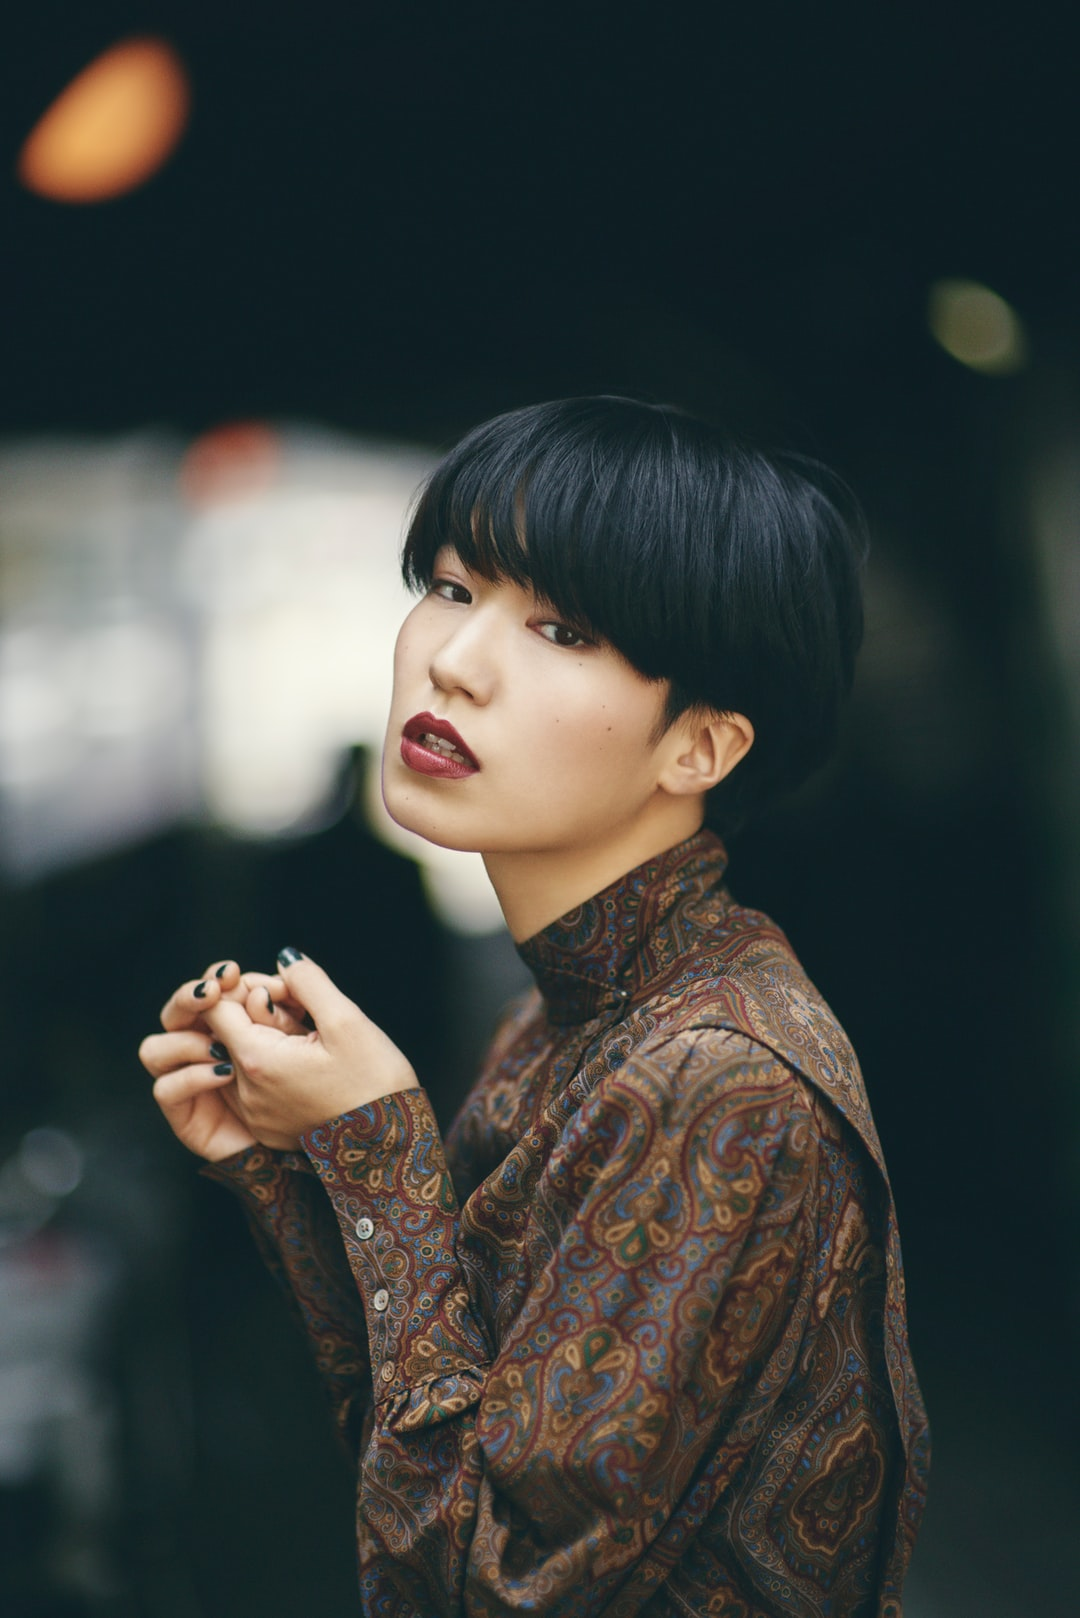 free hair style video 20 best free asian pictures on unsplash 7615 | photo 1496492299670 7615d3c37267?ixlib=rb 0.3